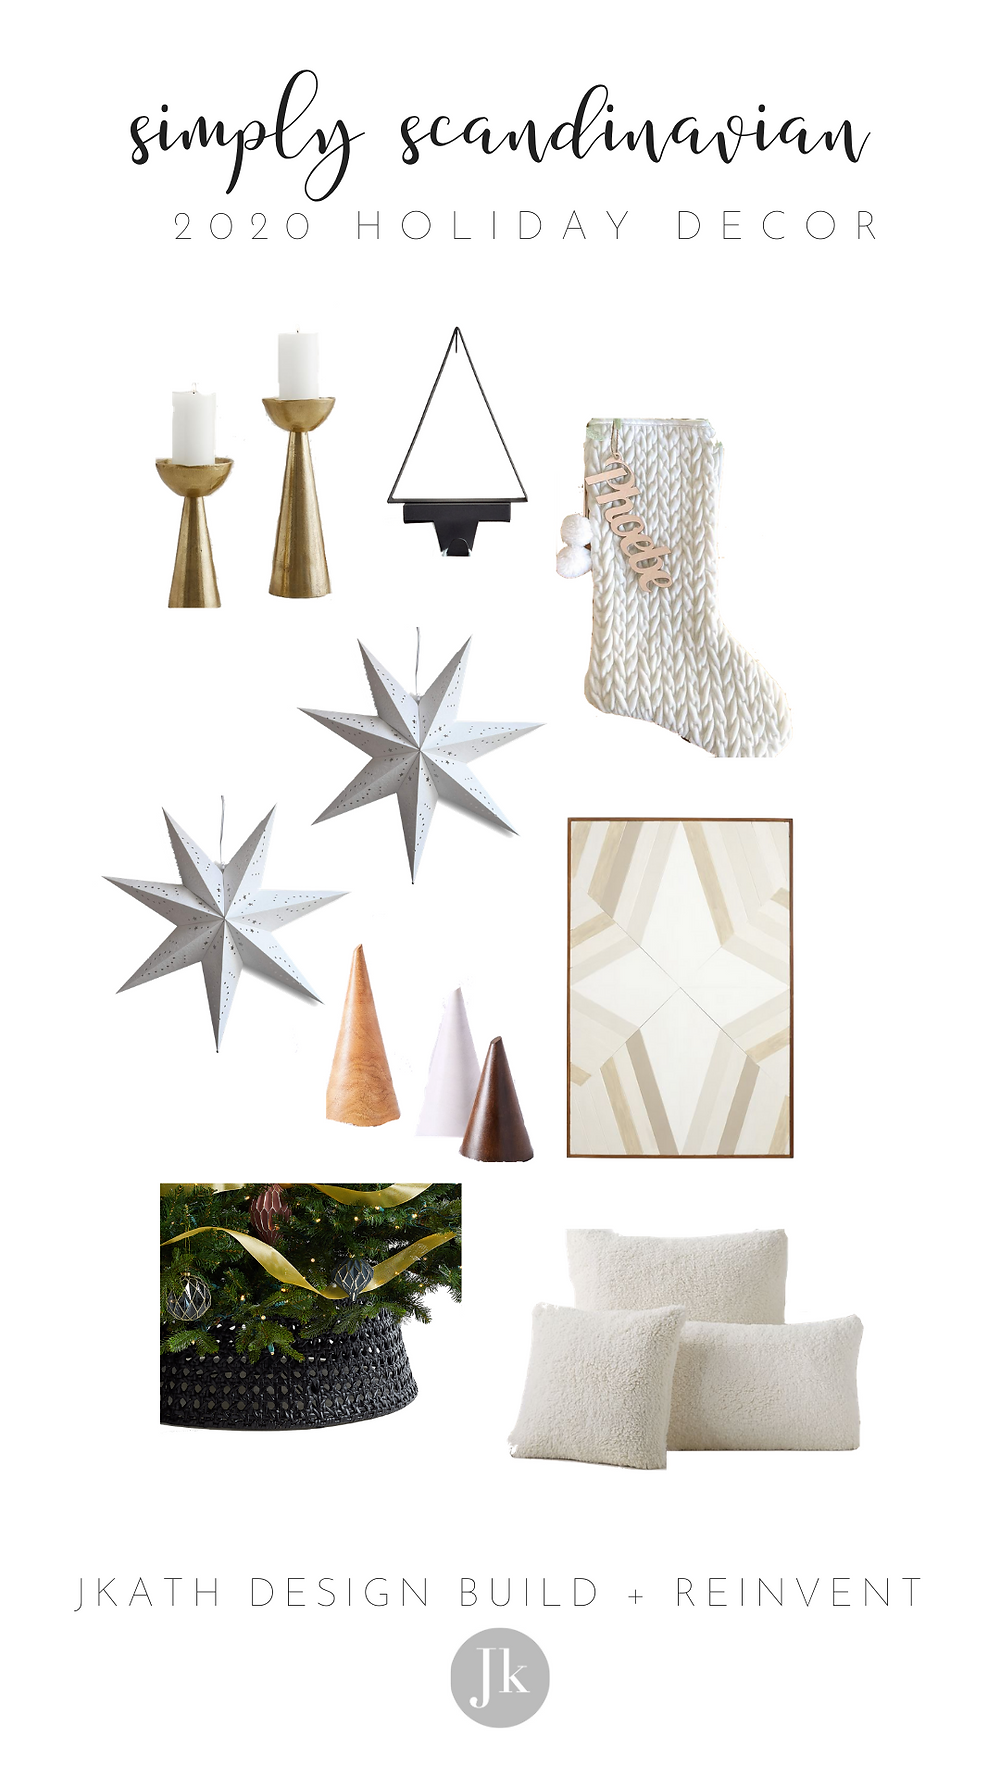 Simply Scandinavian Holiday Decorations